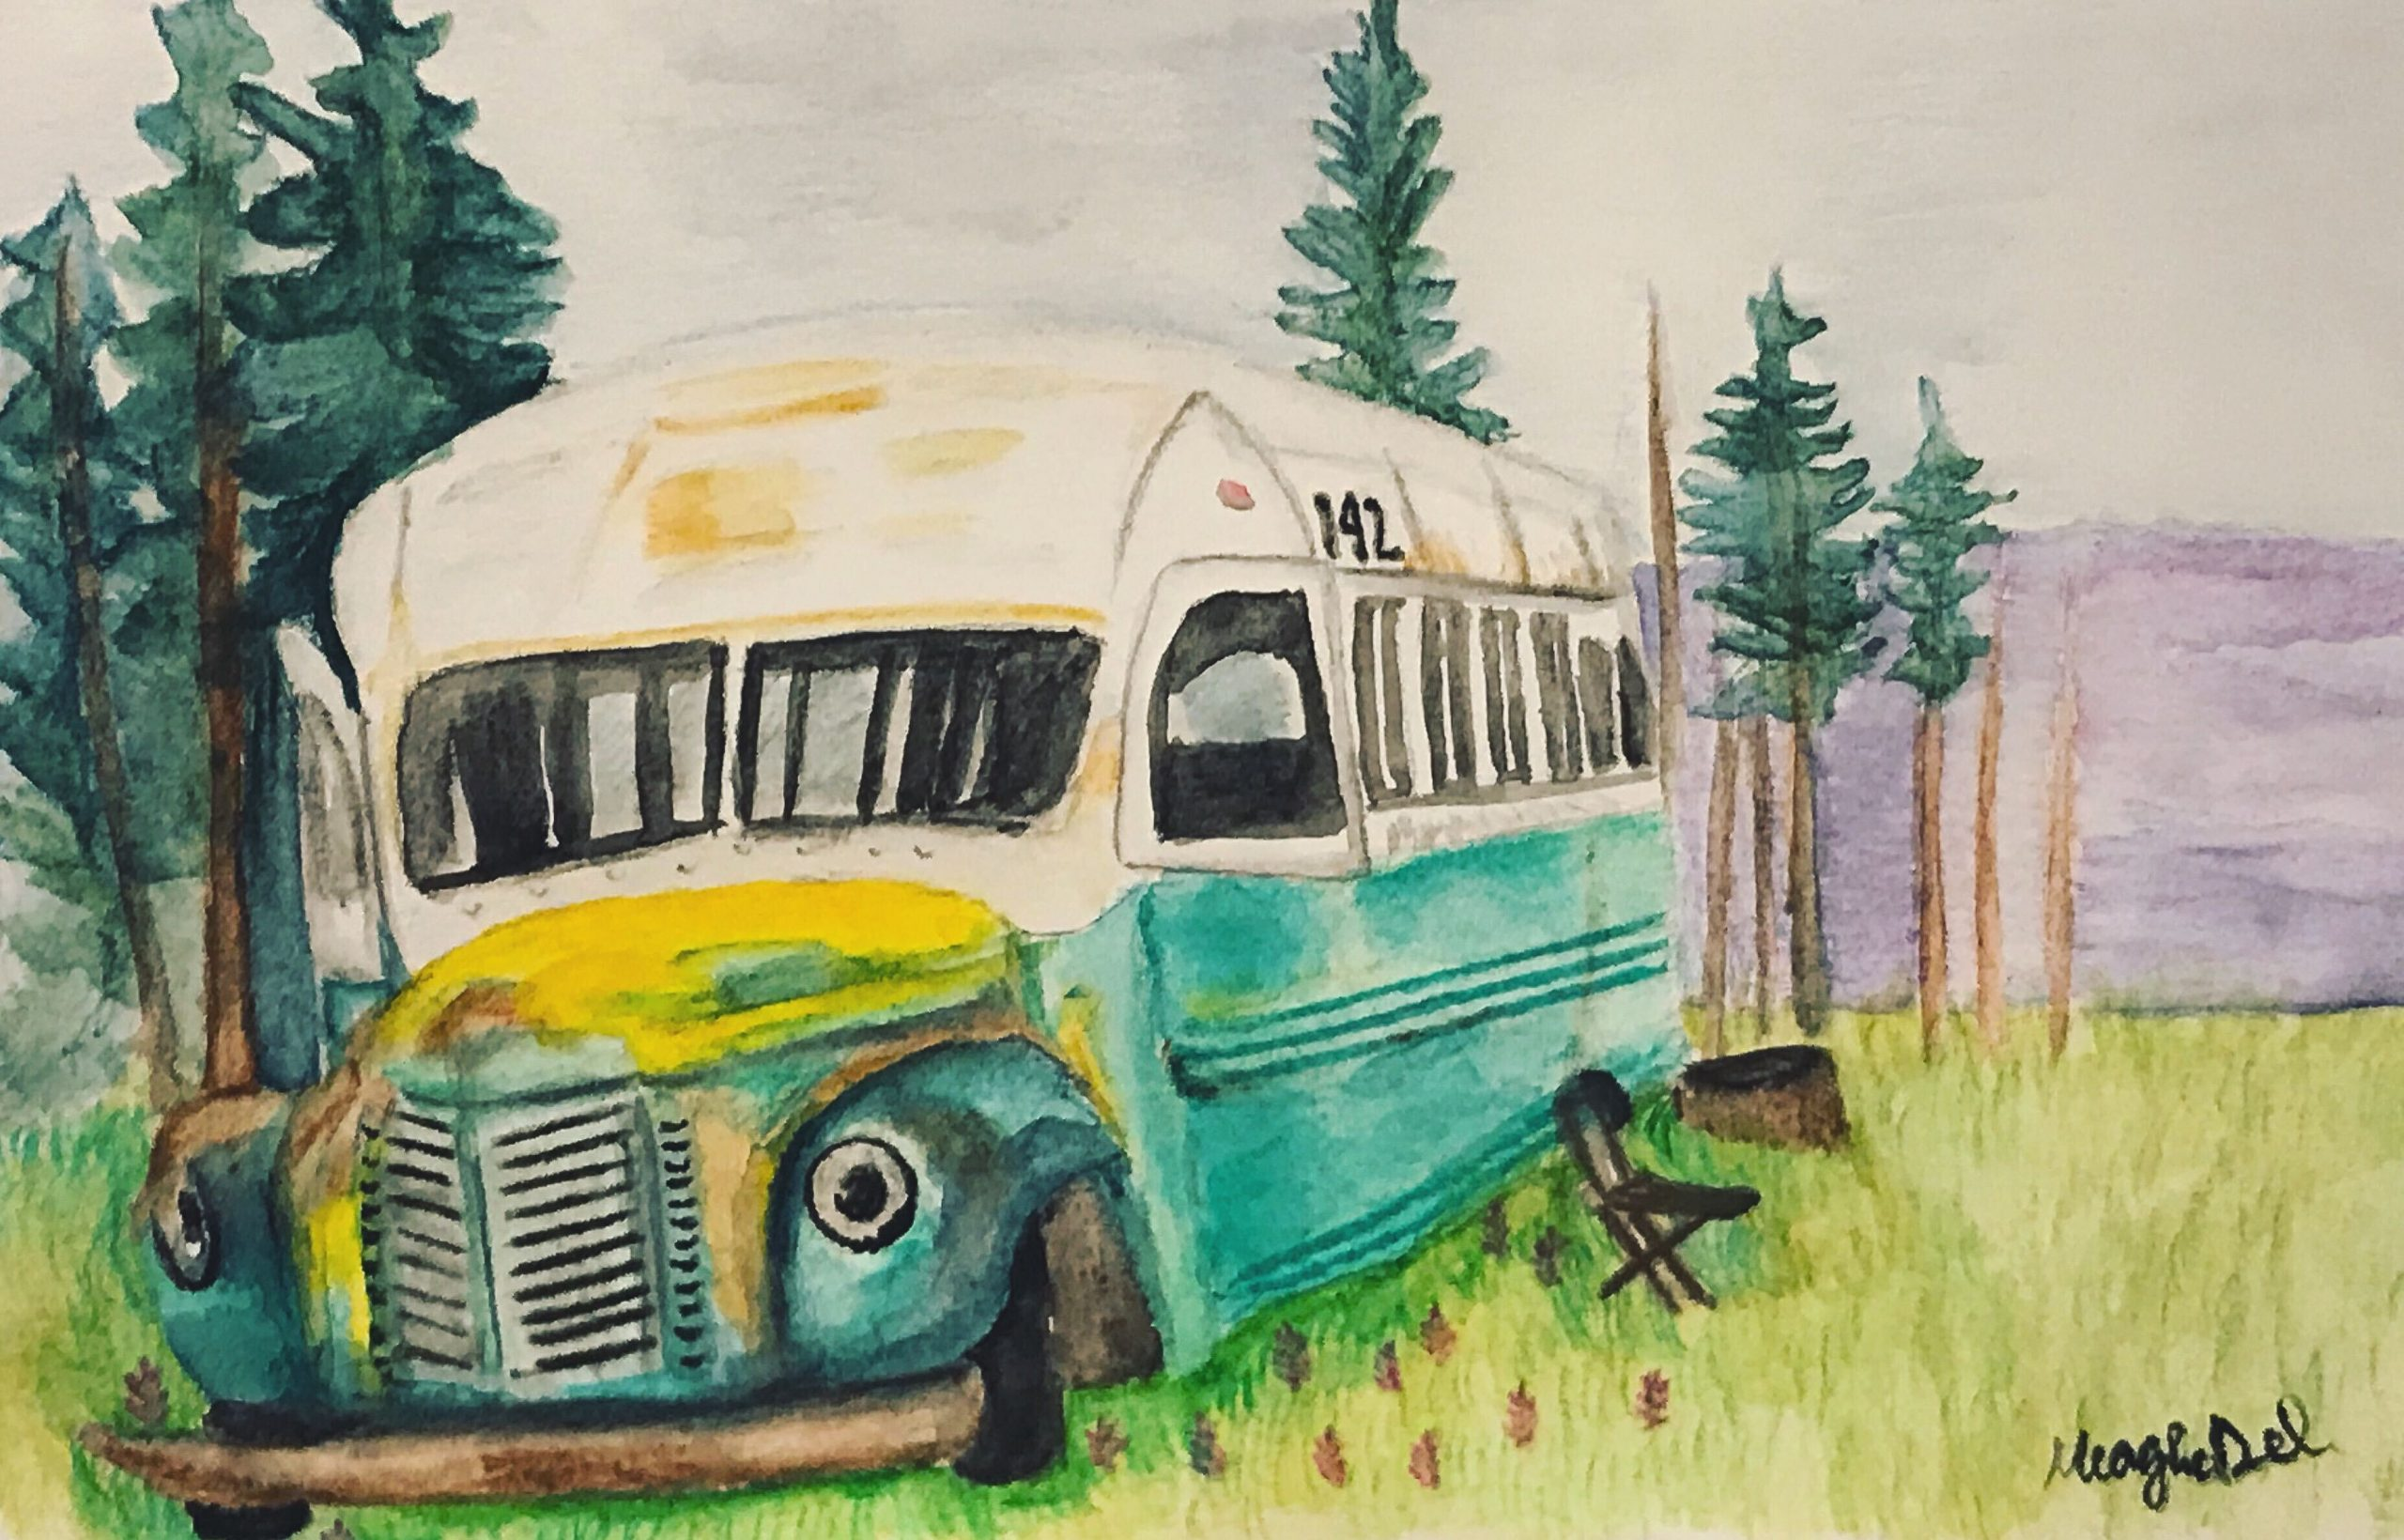 Meaghan Darwish's Painting of Bus 142